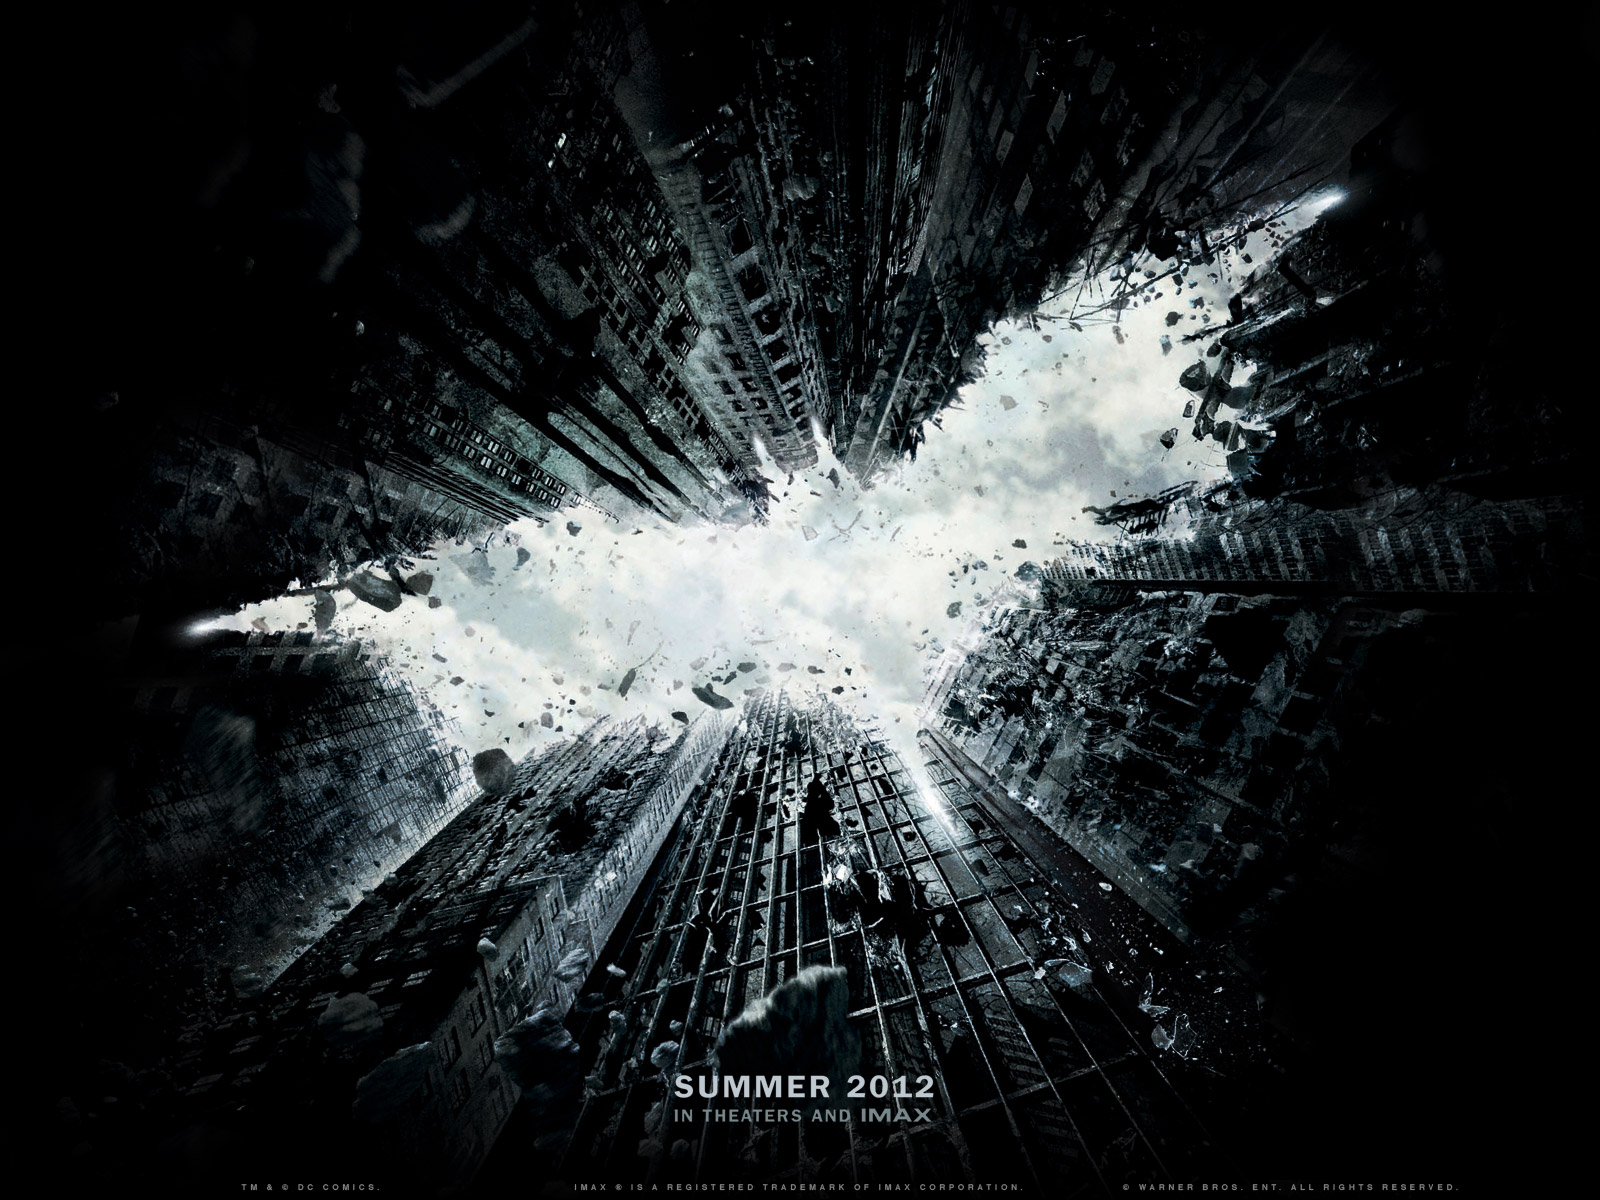 http://2.bp.blogspot.com/-oORc2eLmtgA/Tq72oSksufI/AAAAAAAAH0I/dG89NcSQfJU/s1600/the_dark_knight_rises_2012-normal.jpg